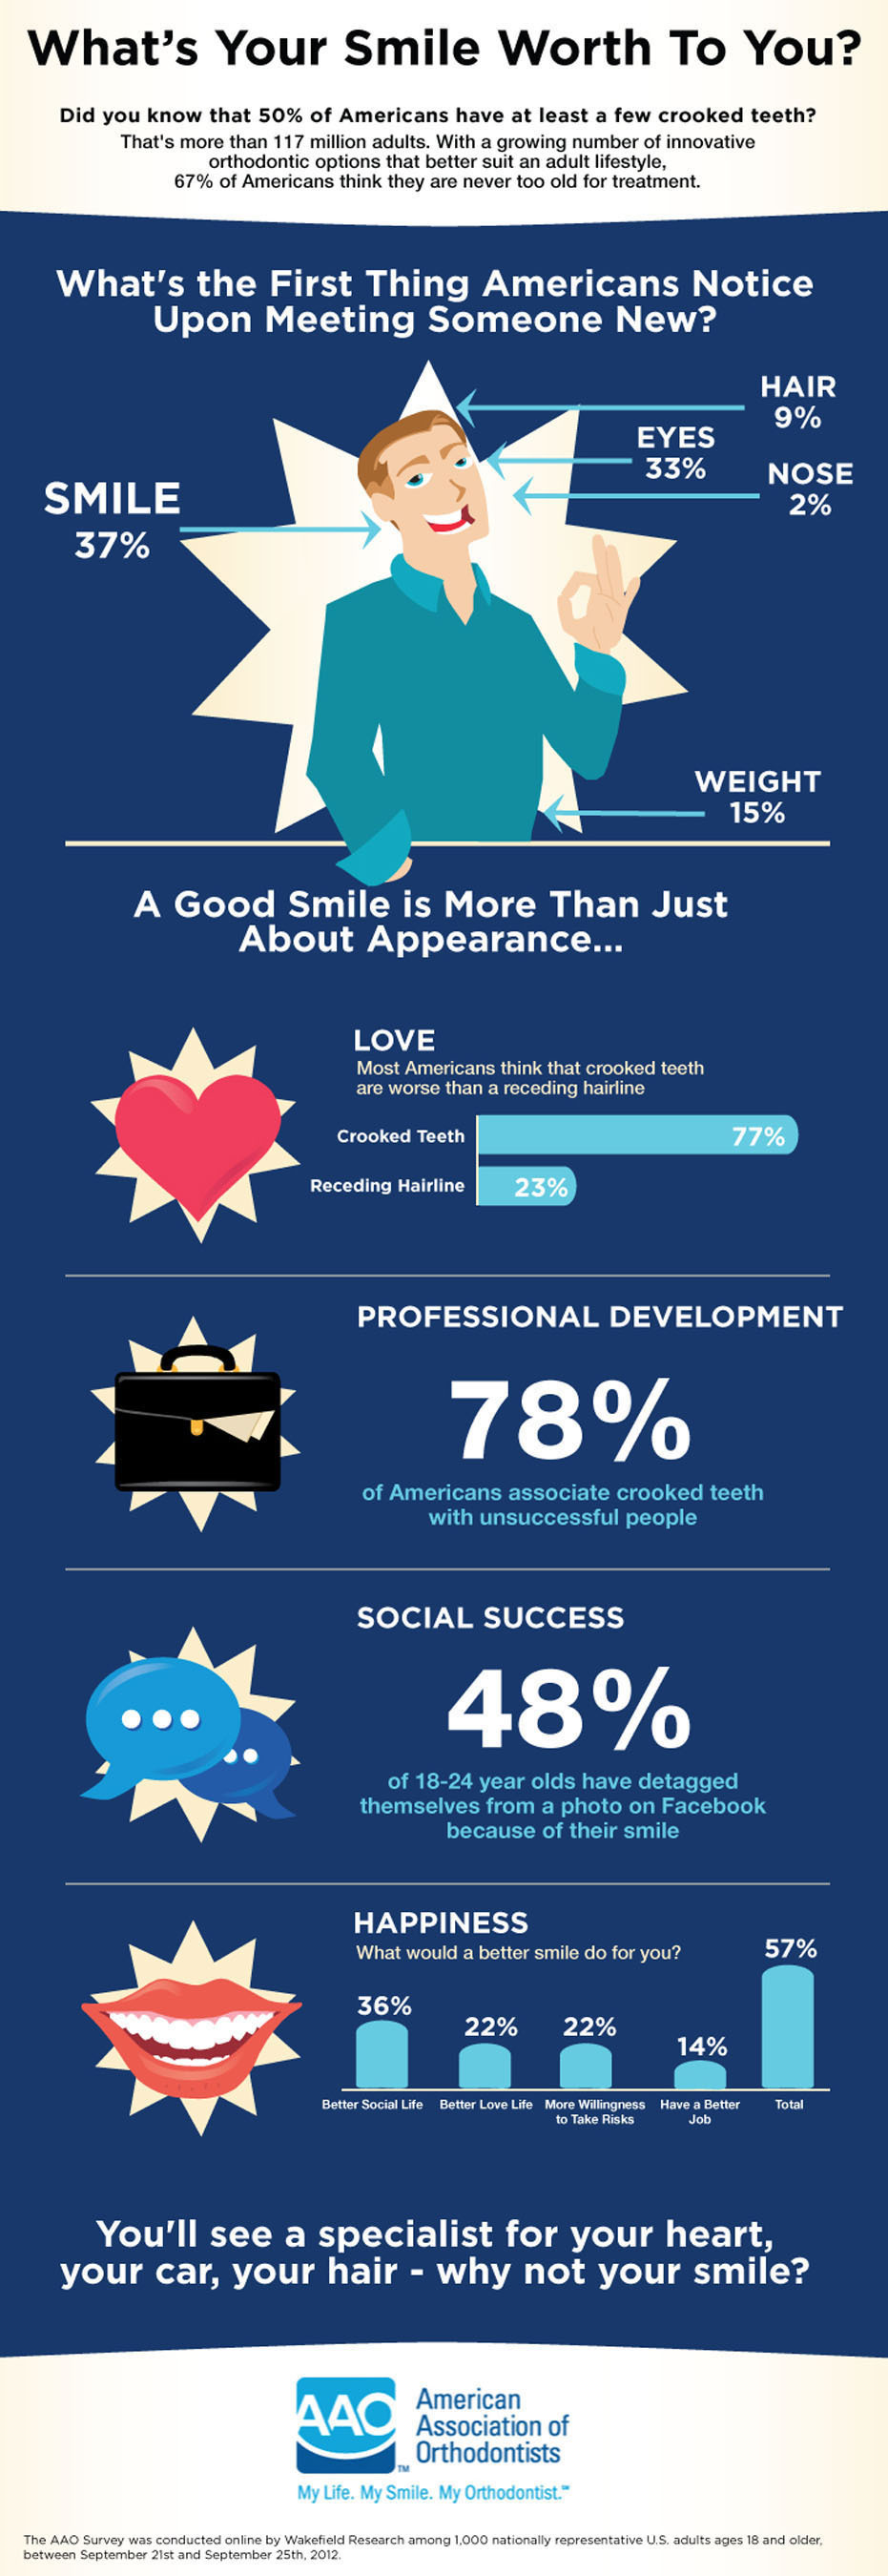 Study Shows That One-Third of American Adults Are Unhappy With Their Smile